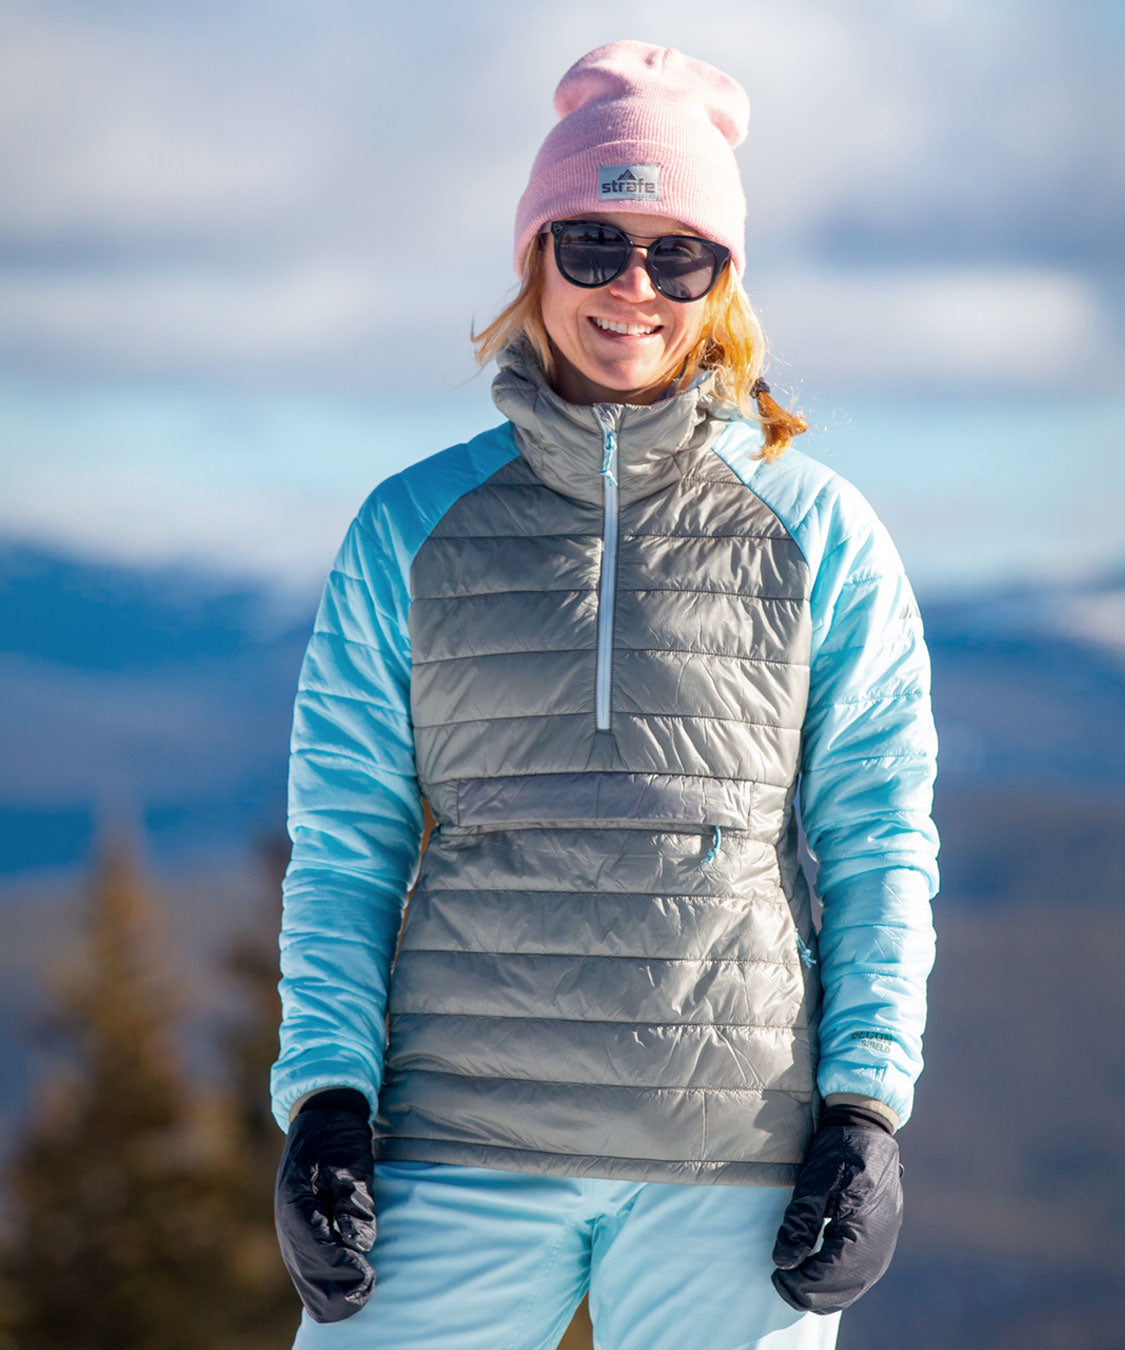 woman in aero pullover standing in snow